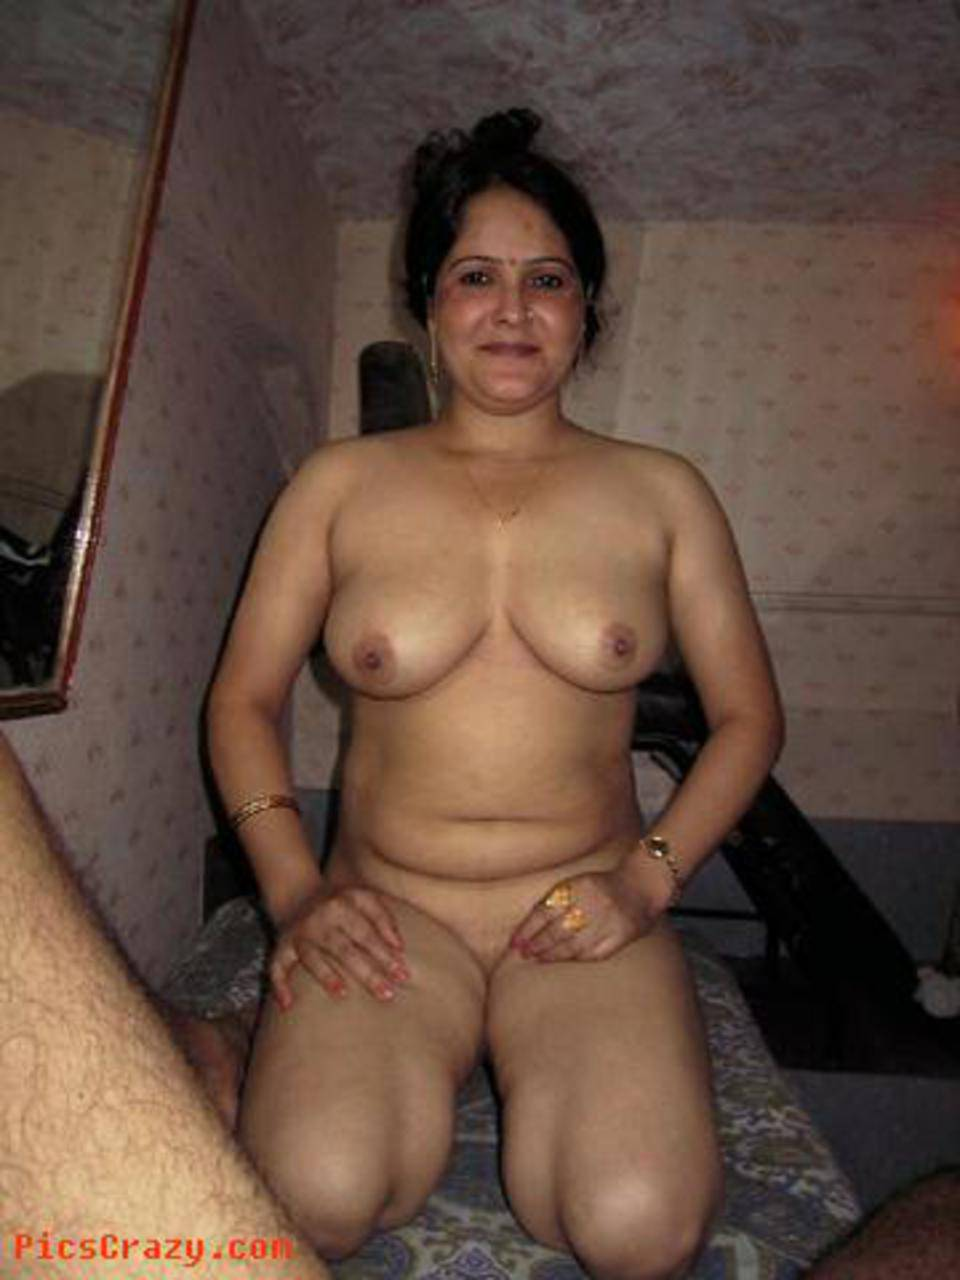 Indian naked hot porn woman photo erotic vids